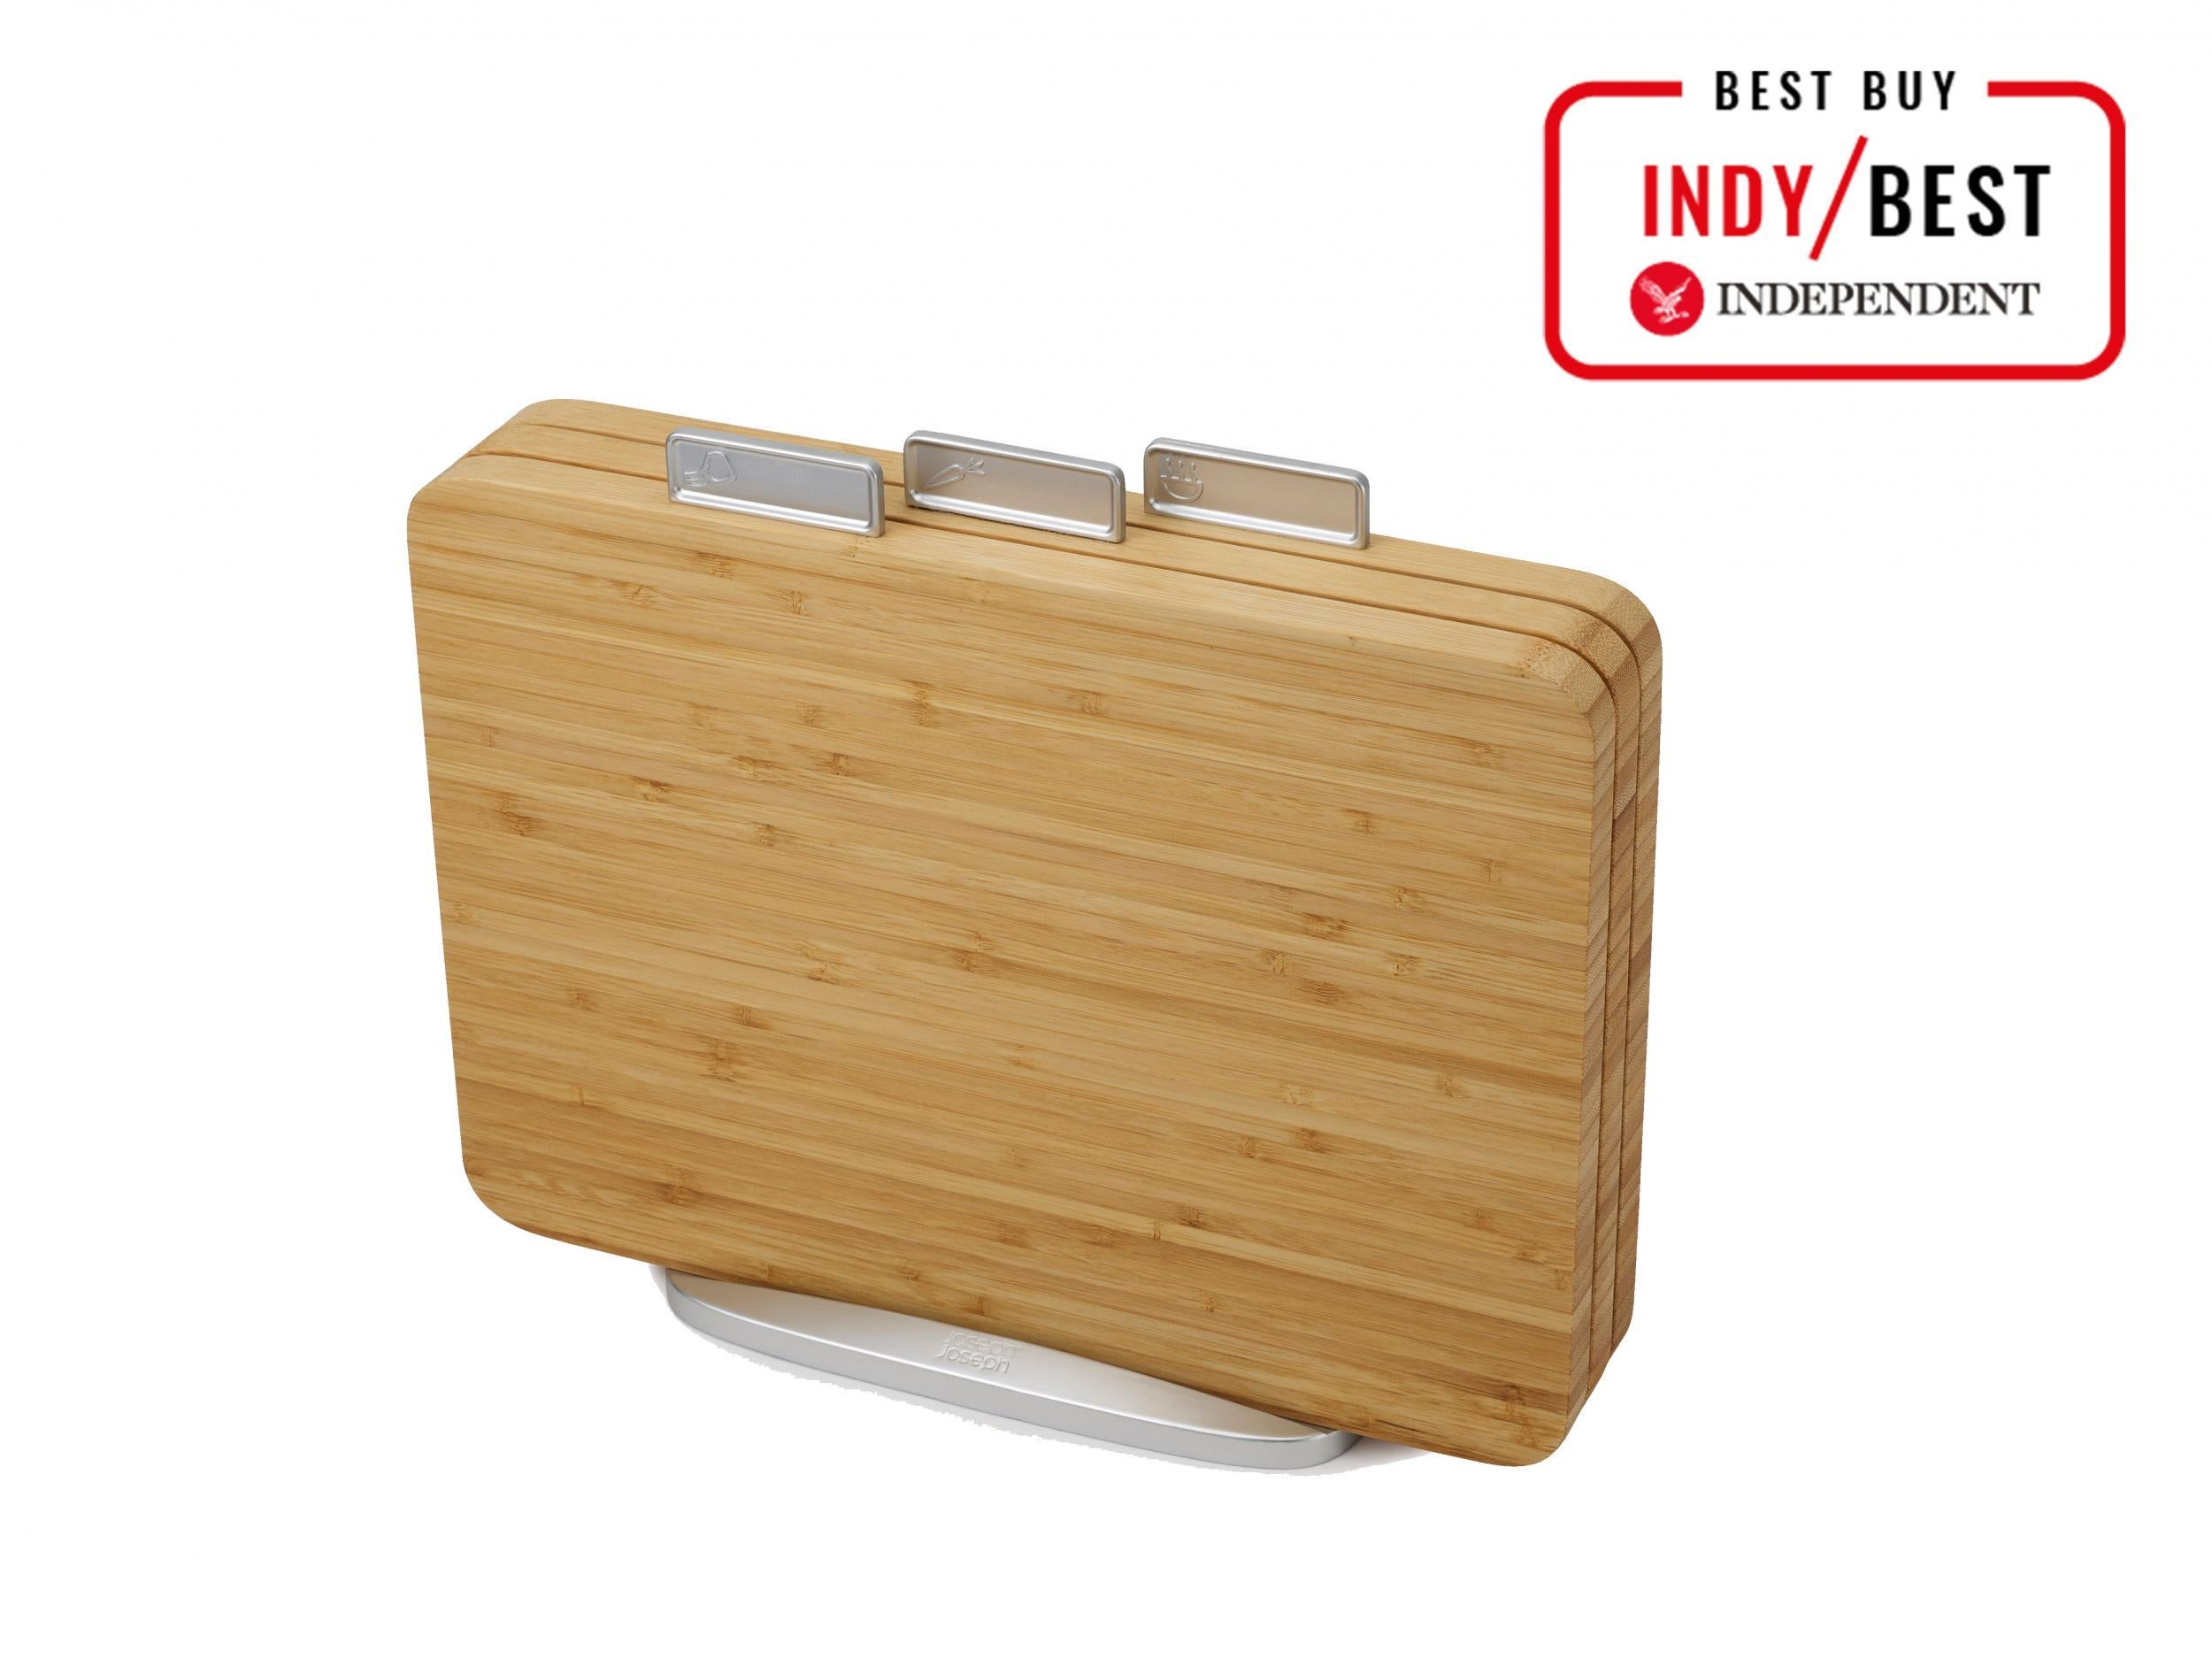 Pleasing 10 Best Chopping Boards The Independent Download Free Architecture Designs Scobabritishbridgeorg